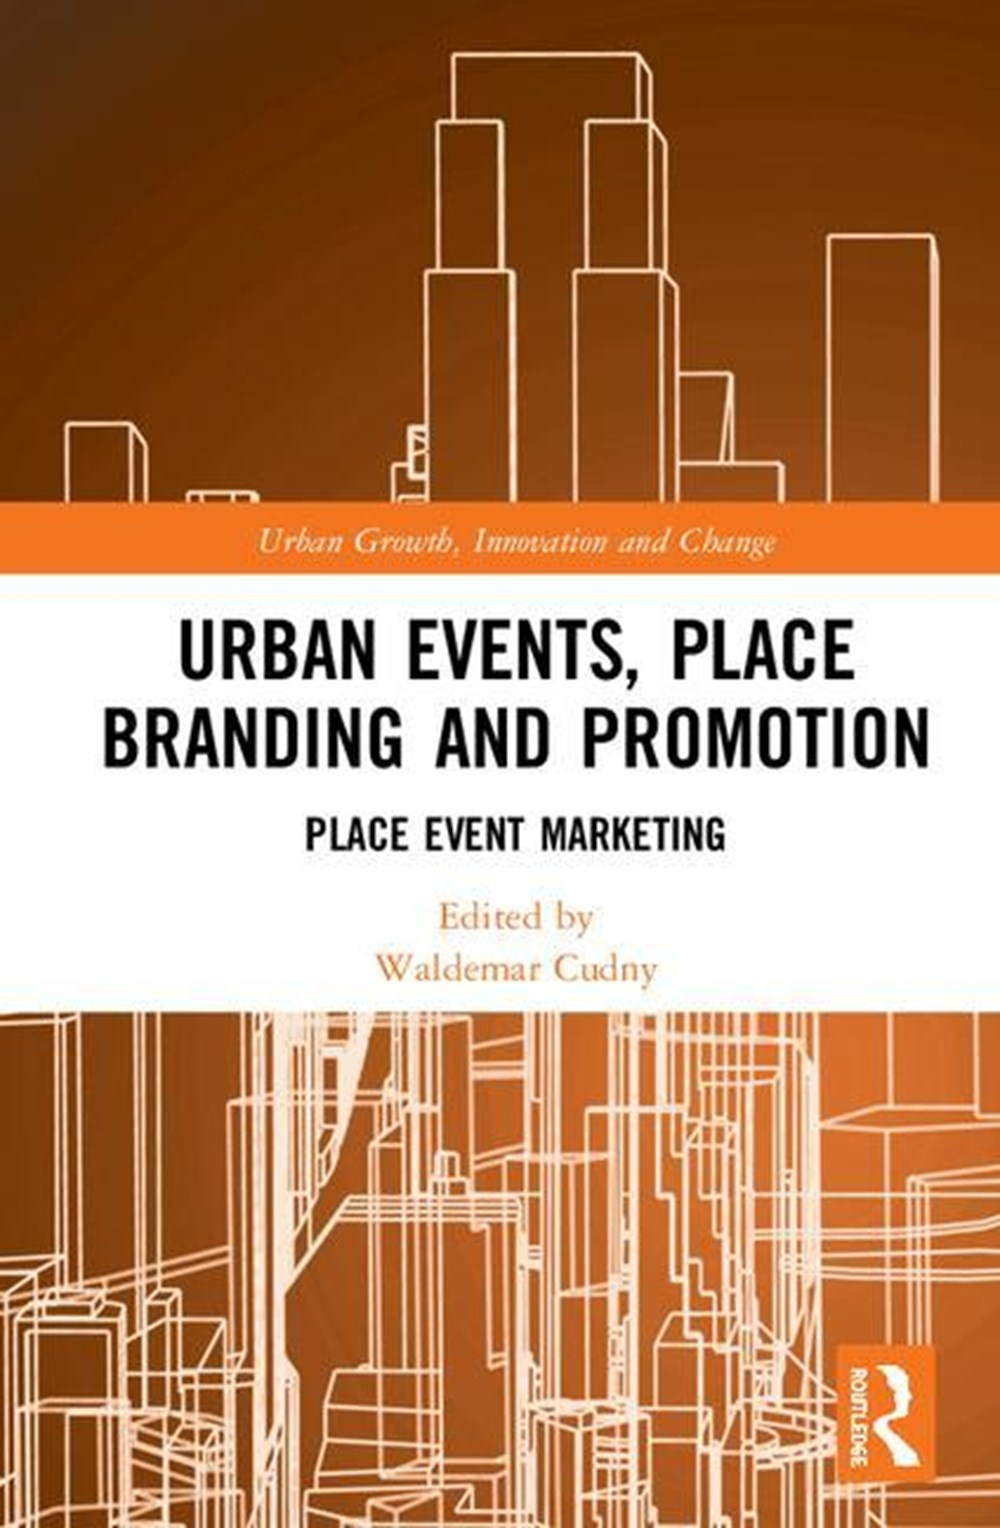 Urban Events, Place Branding and Promotion Place Event Marketing